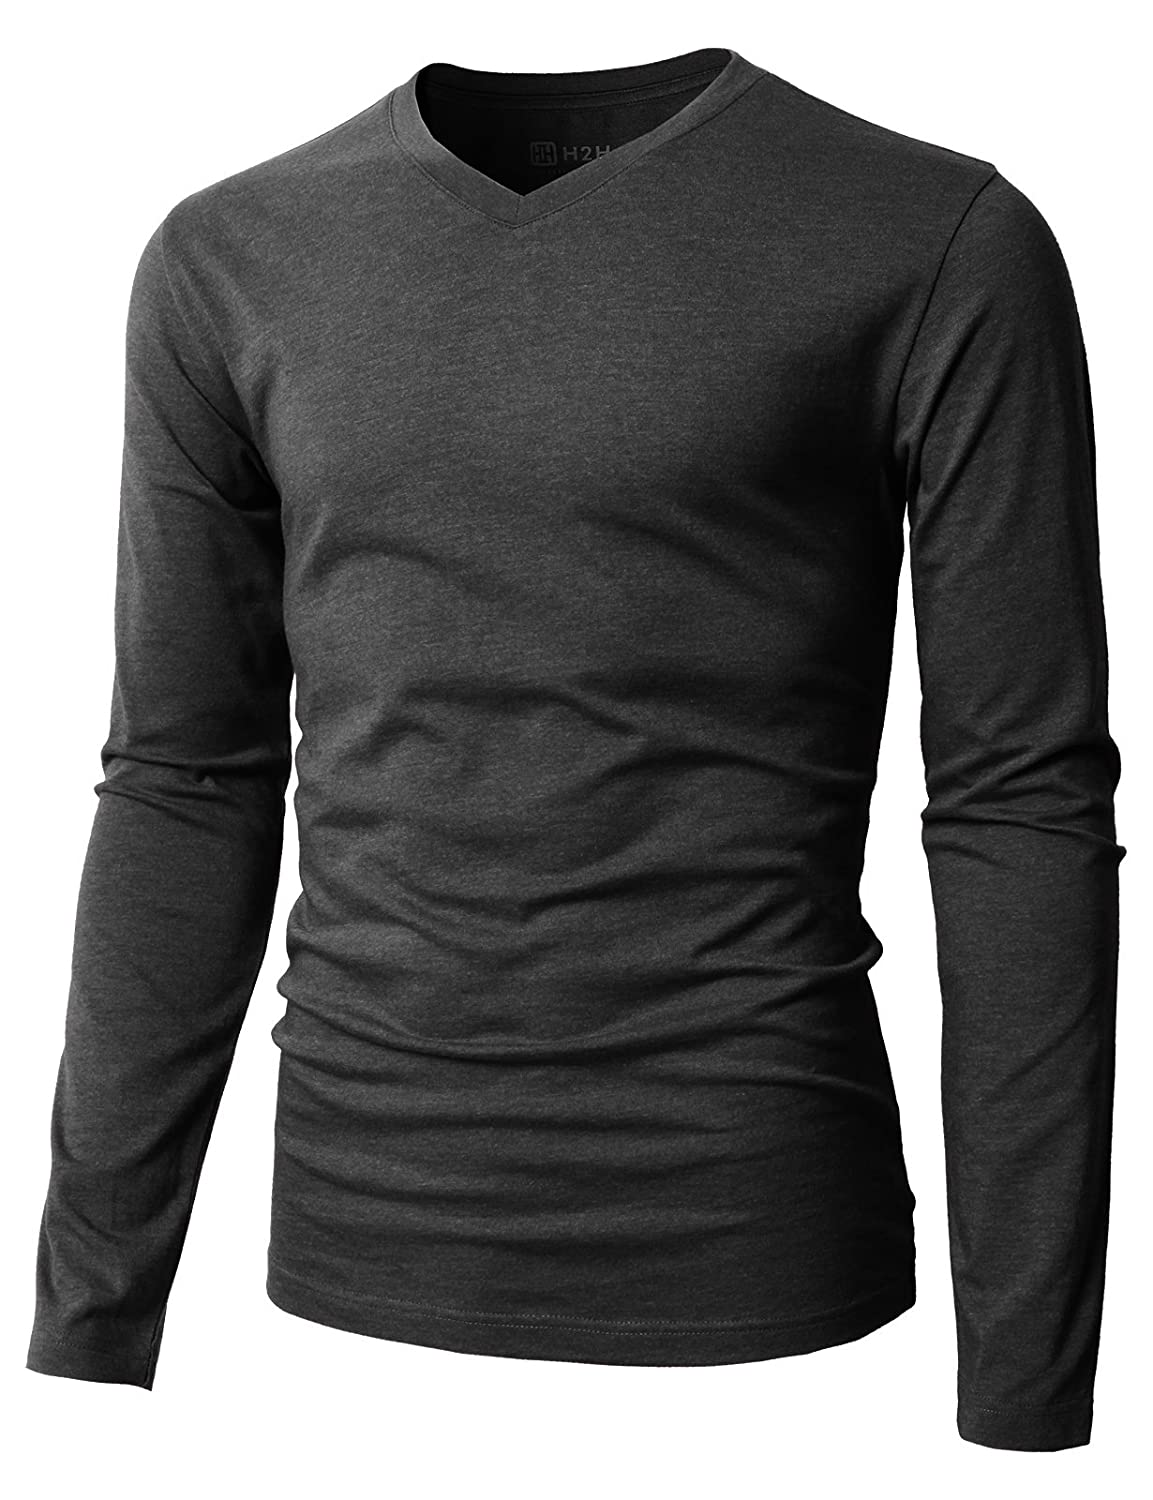 07b6efd0bde3 Amazon.com: H2H Mens Casual Premium Slim Fit T-Shirts Long Sleeve Cotton  Blended of Various Styles: Clothing